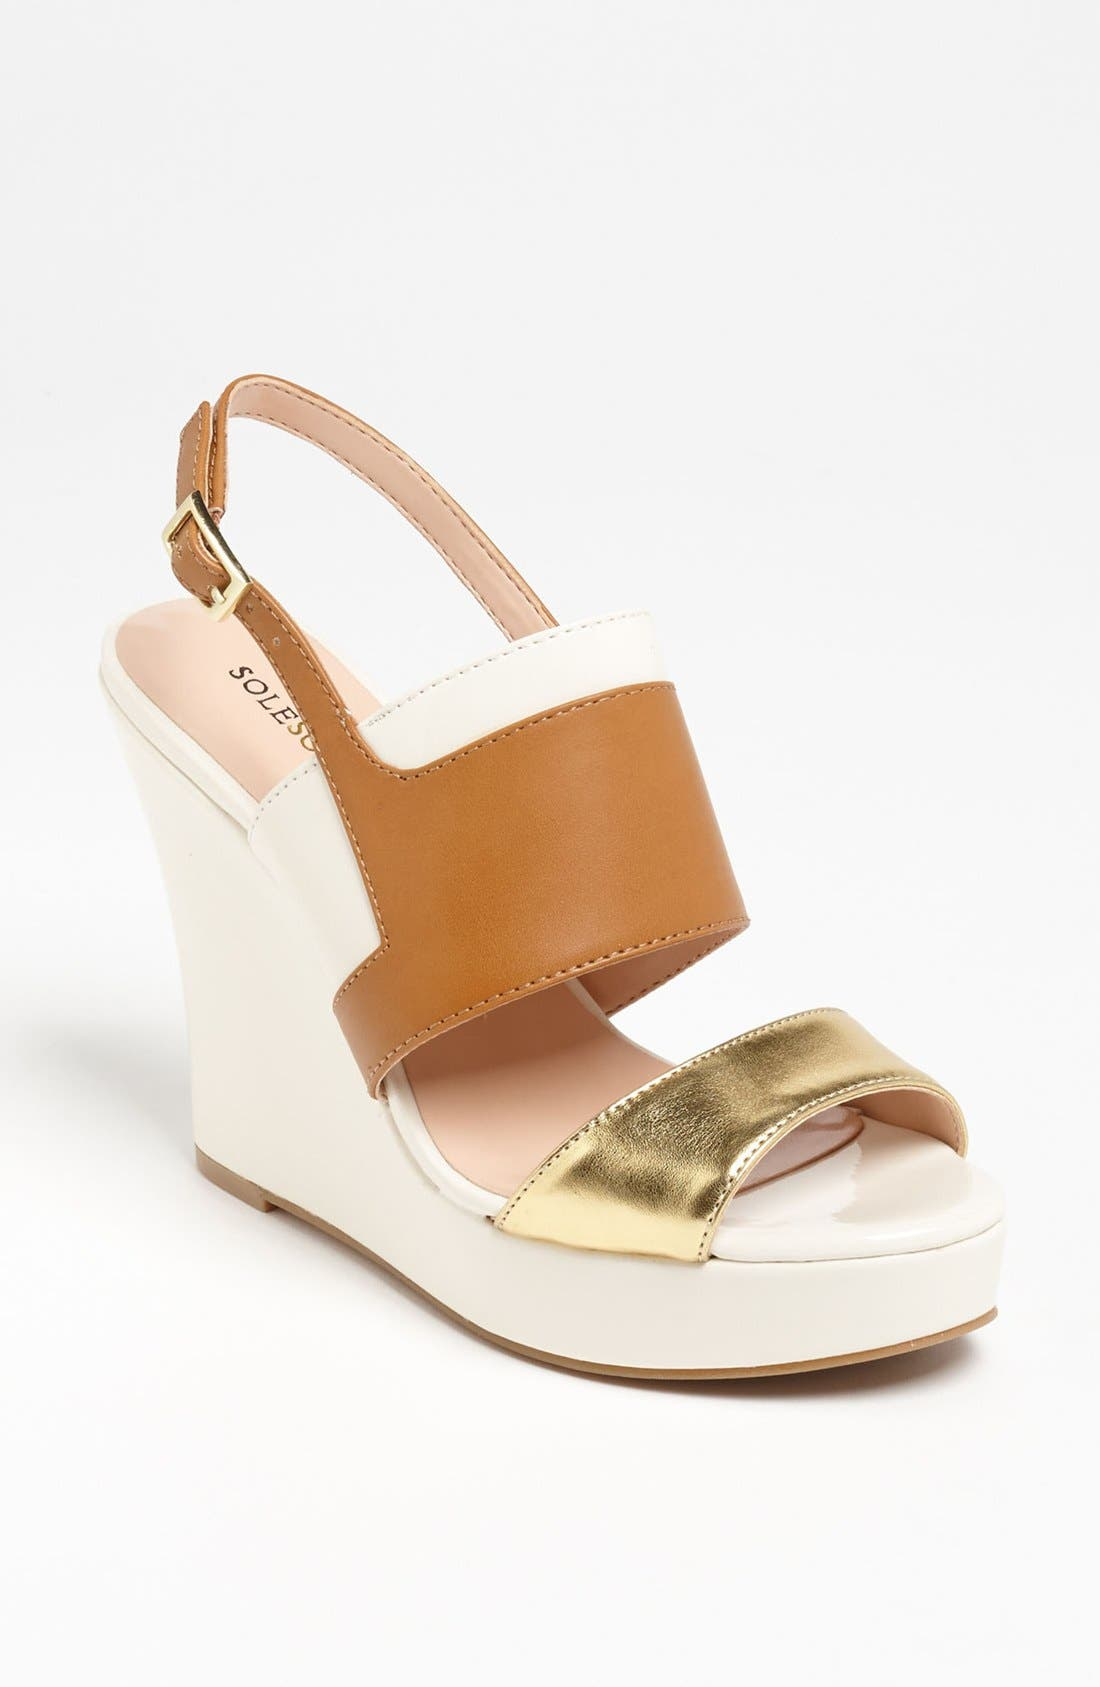 Alternate Image 1 Selected - Sole Society 'Joan' Wedge